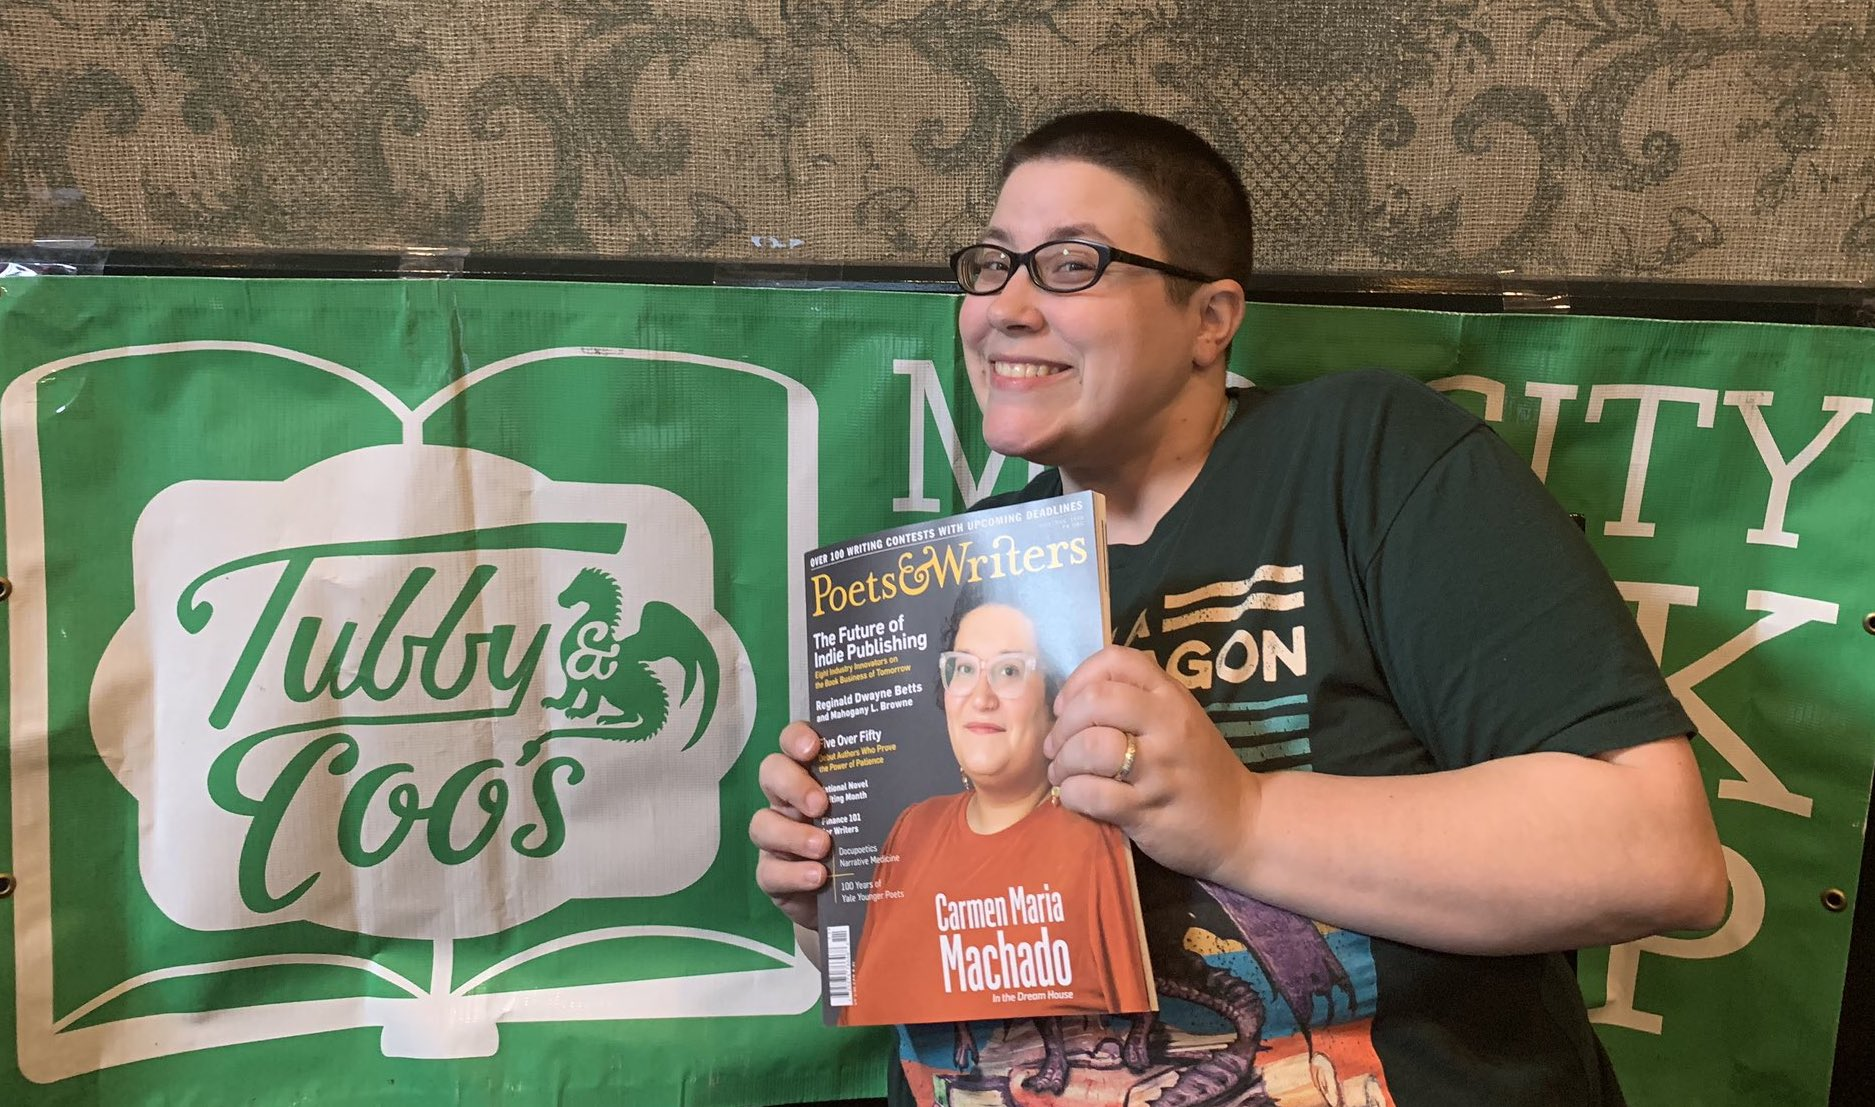 Tubby & Coo's bookstore owner Candice Huber